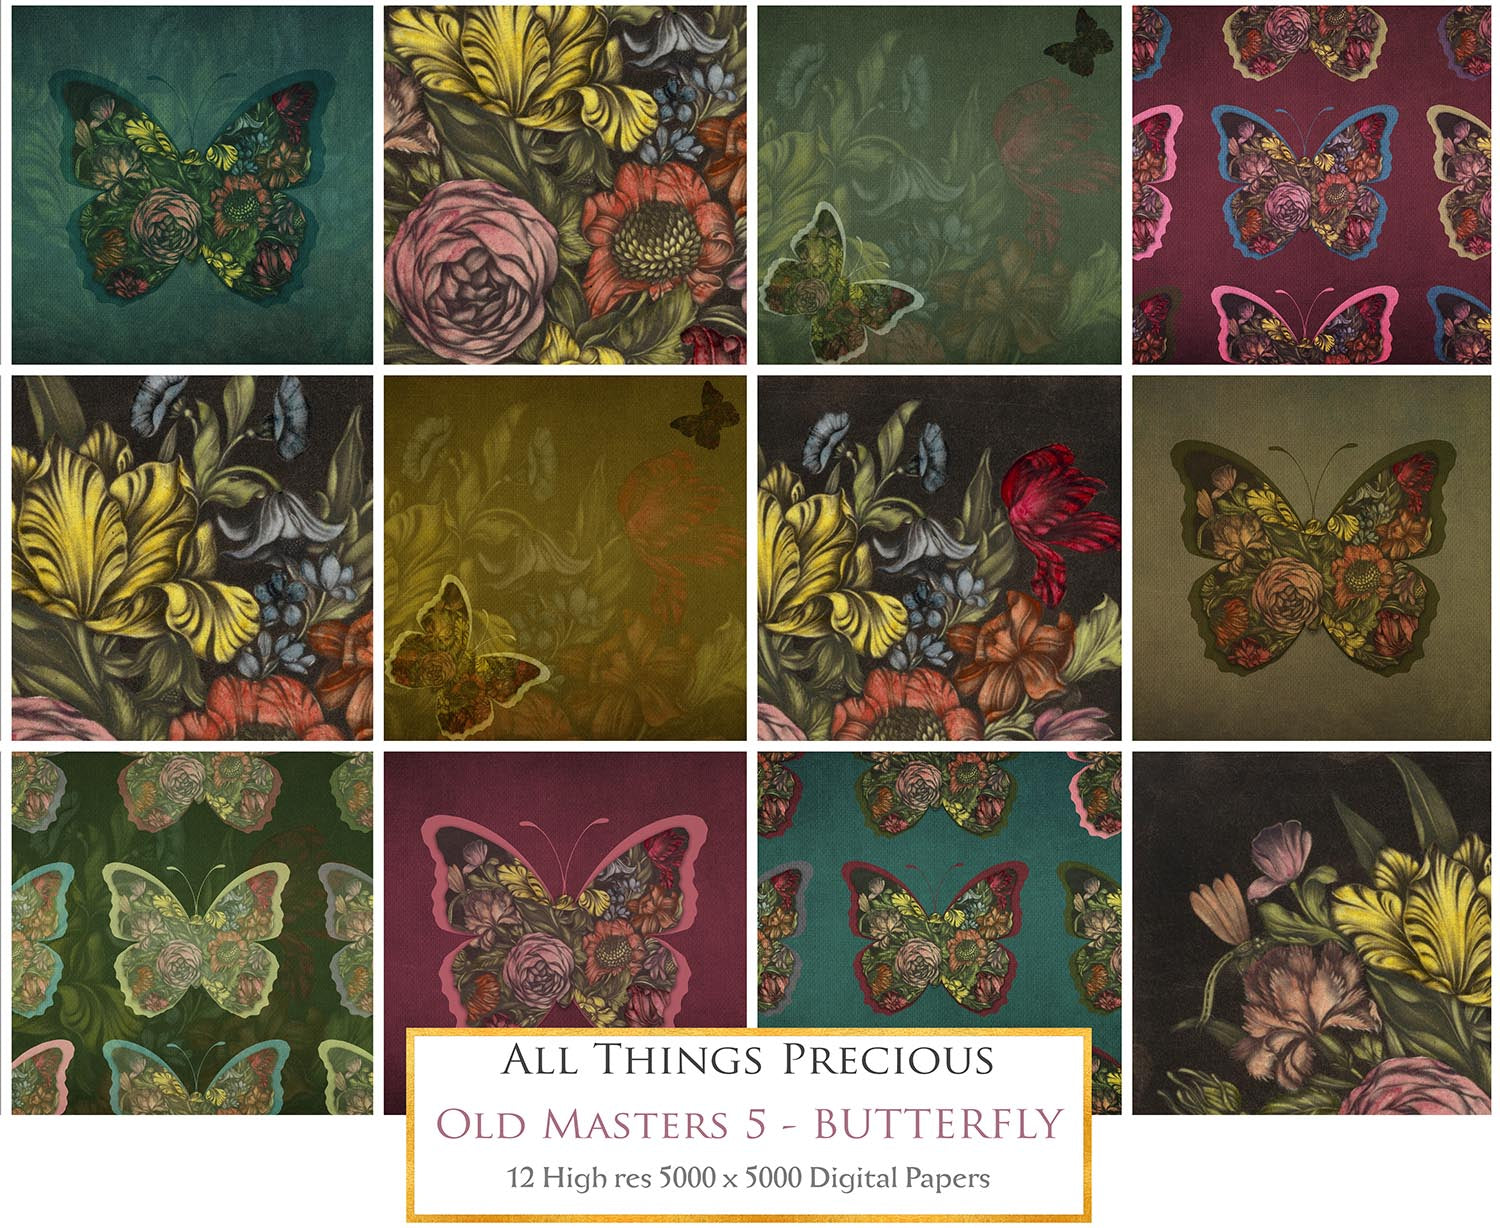 OLD MASTERS BUTTERFLY Set 5 - Digital Papers